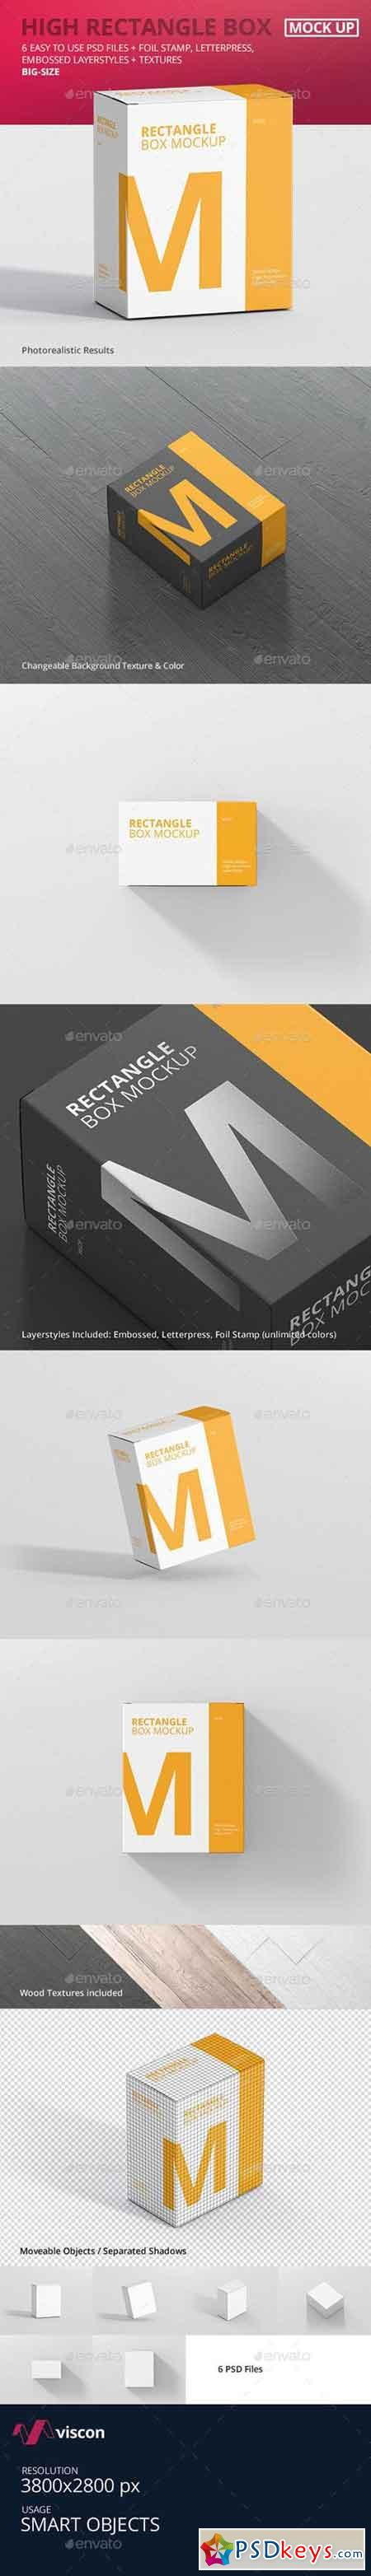 Box Mockup - High Rectangle Big Size 21048673